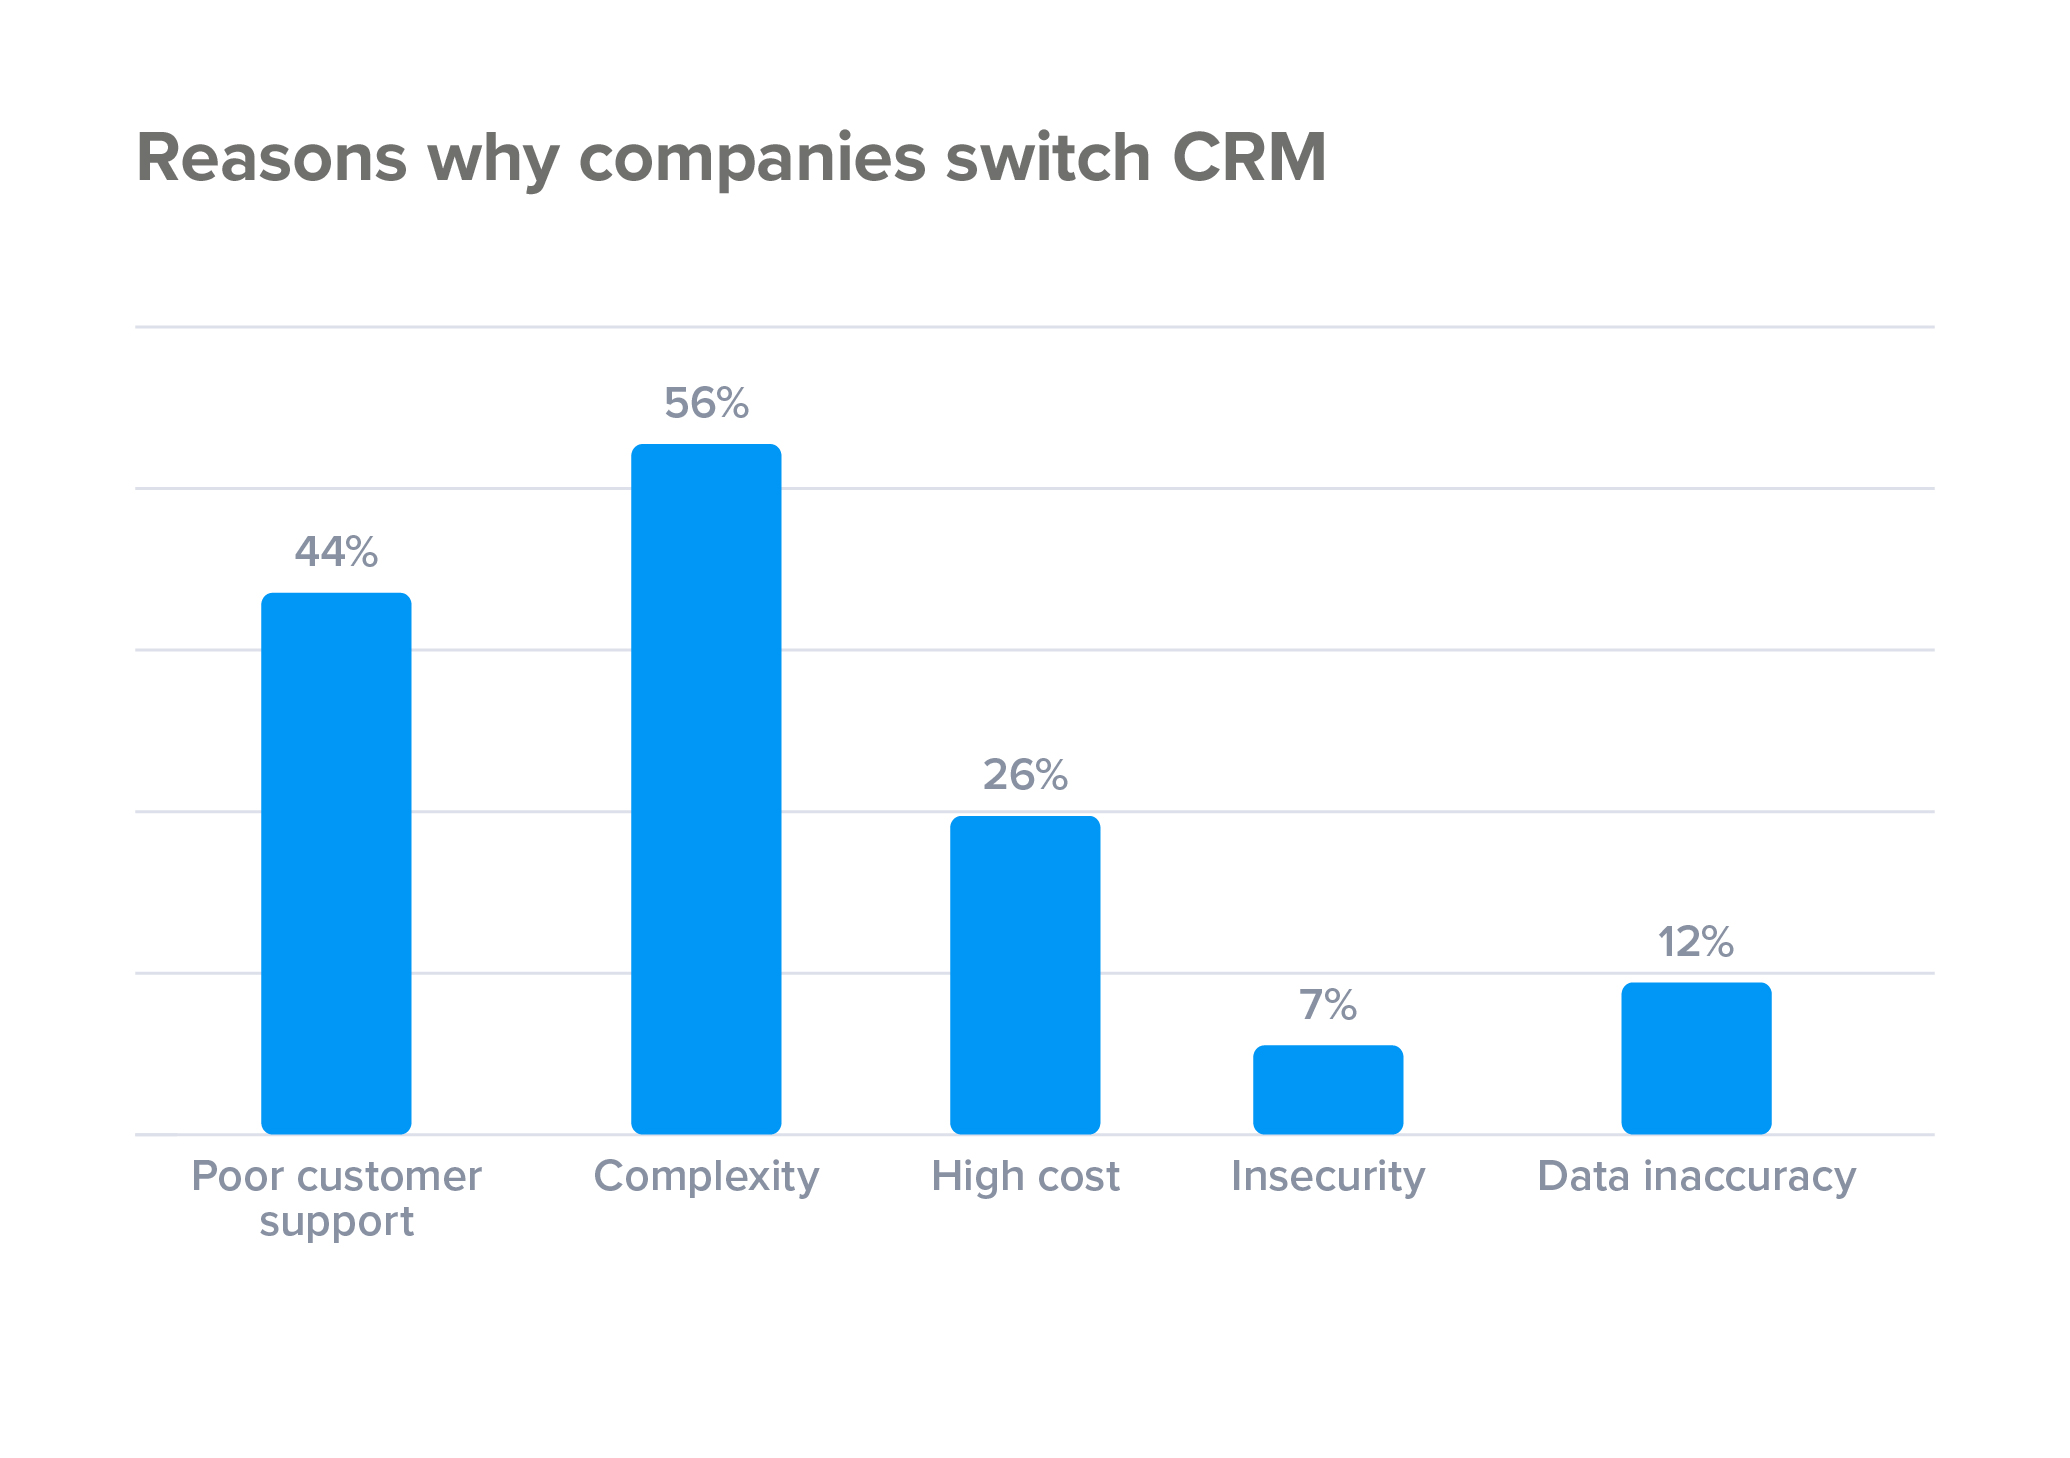 Reasons why companies switch CRM